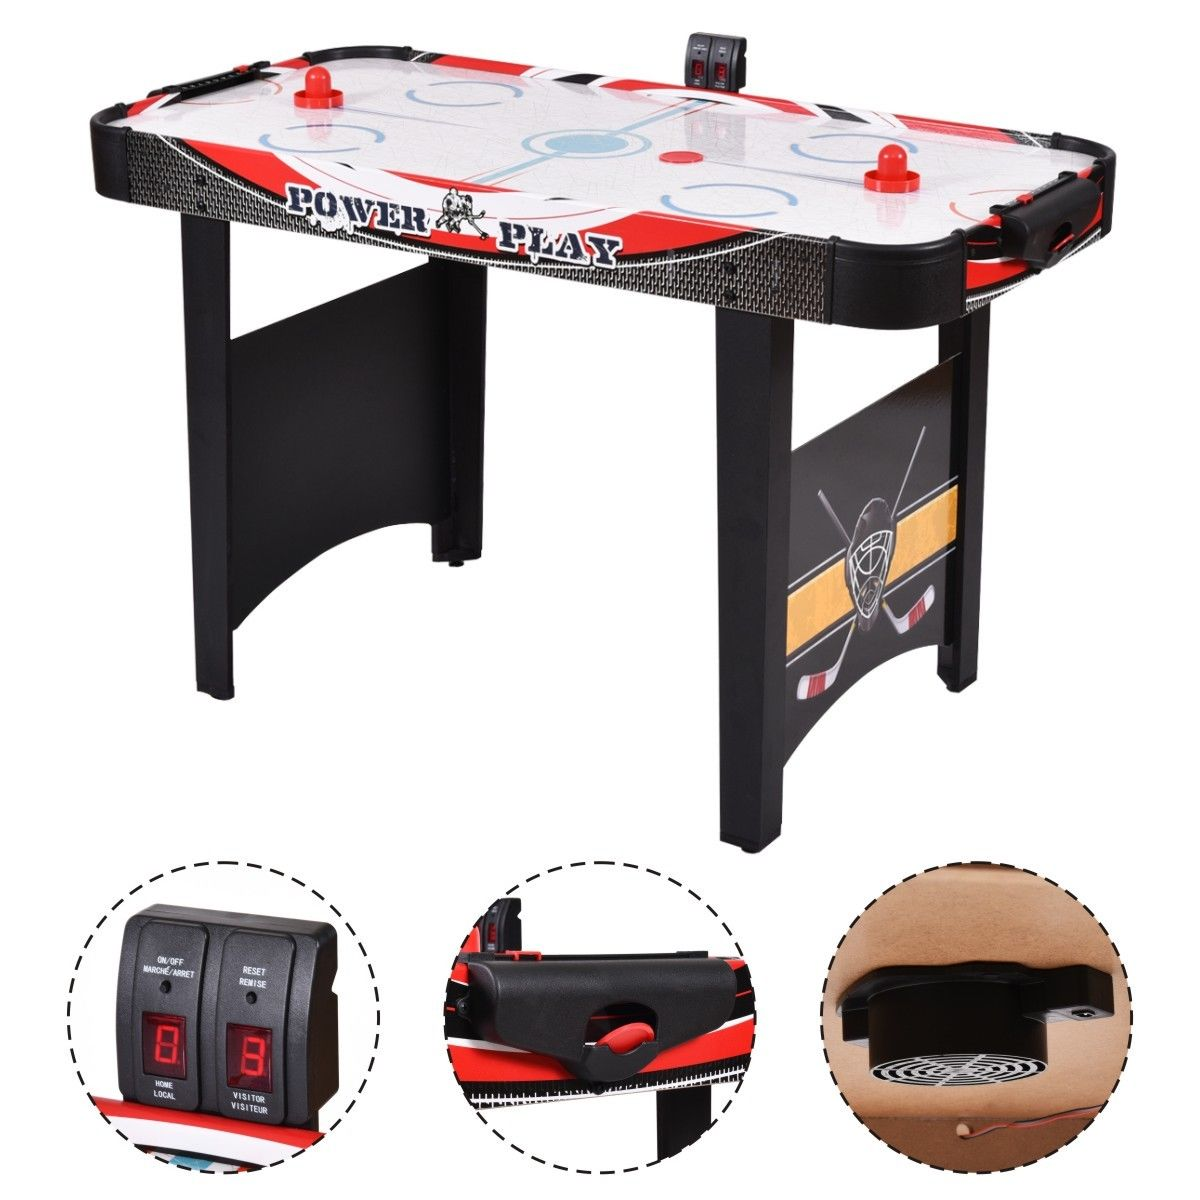 Costway 48''Air Powered Hockey Table Indoor Sports Game Electronic Scoring Red Puck Kids